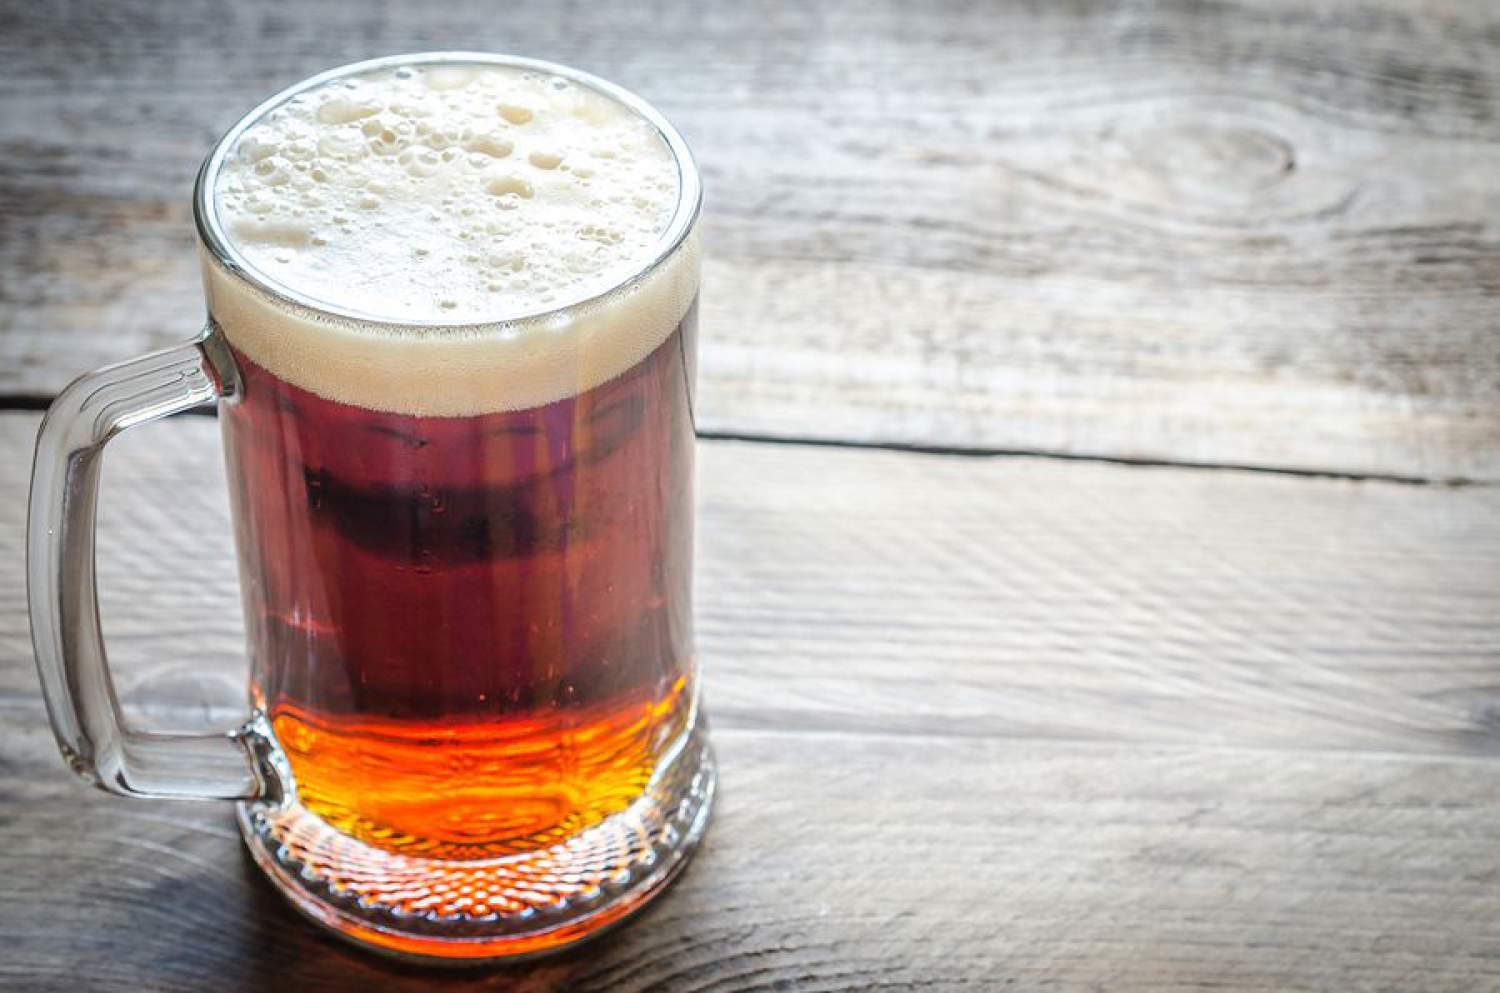 A delicious red beer!